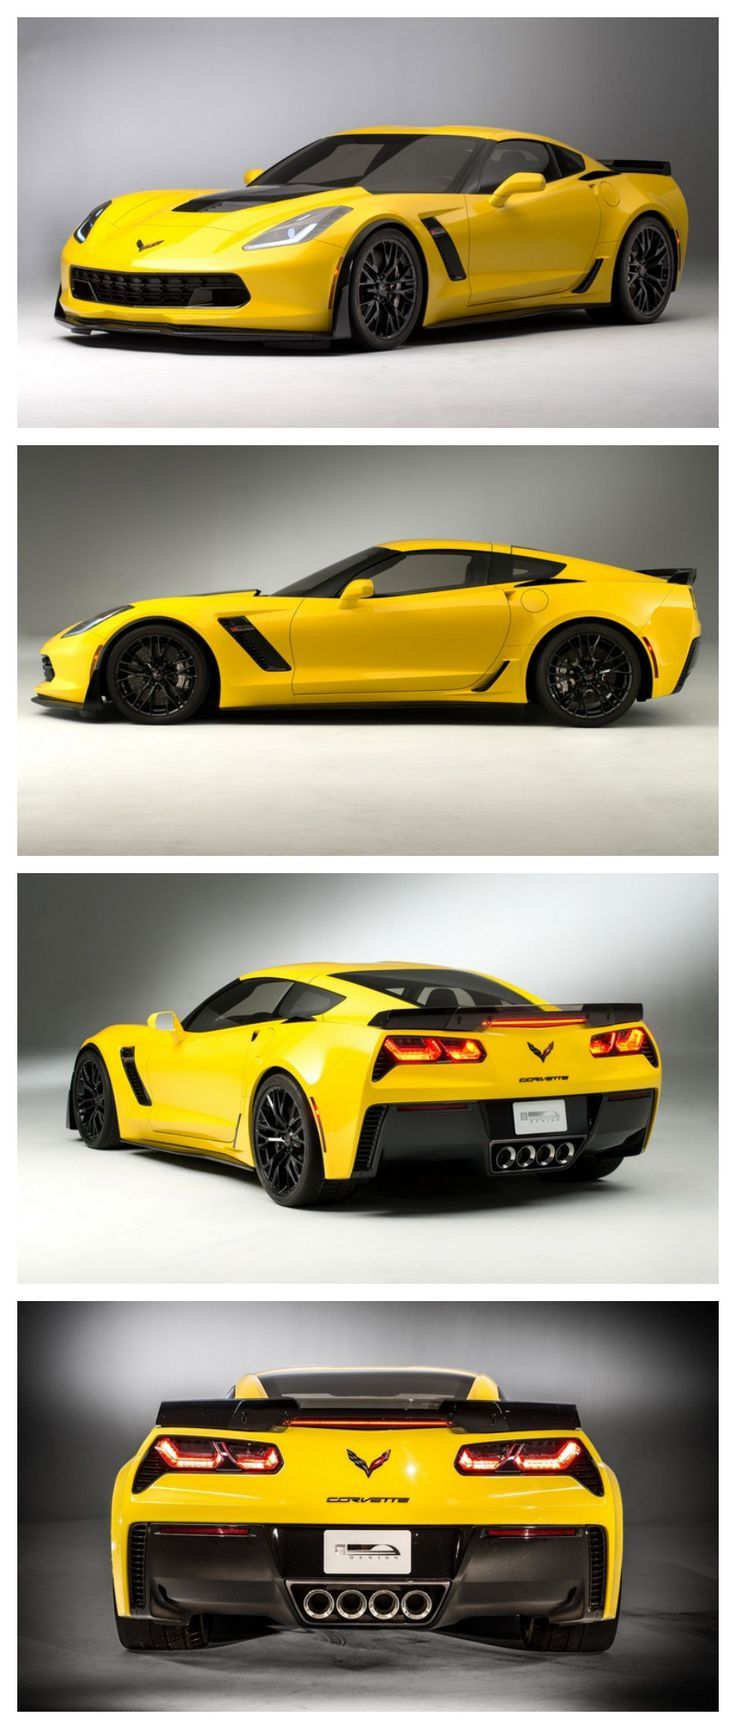 Yea Baby! Supercharged Chevy C7 Stingray #AutoAwesome